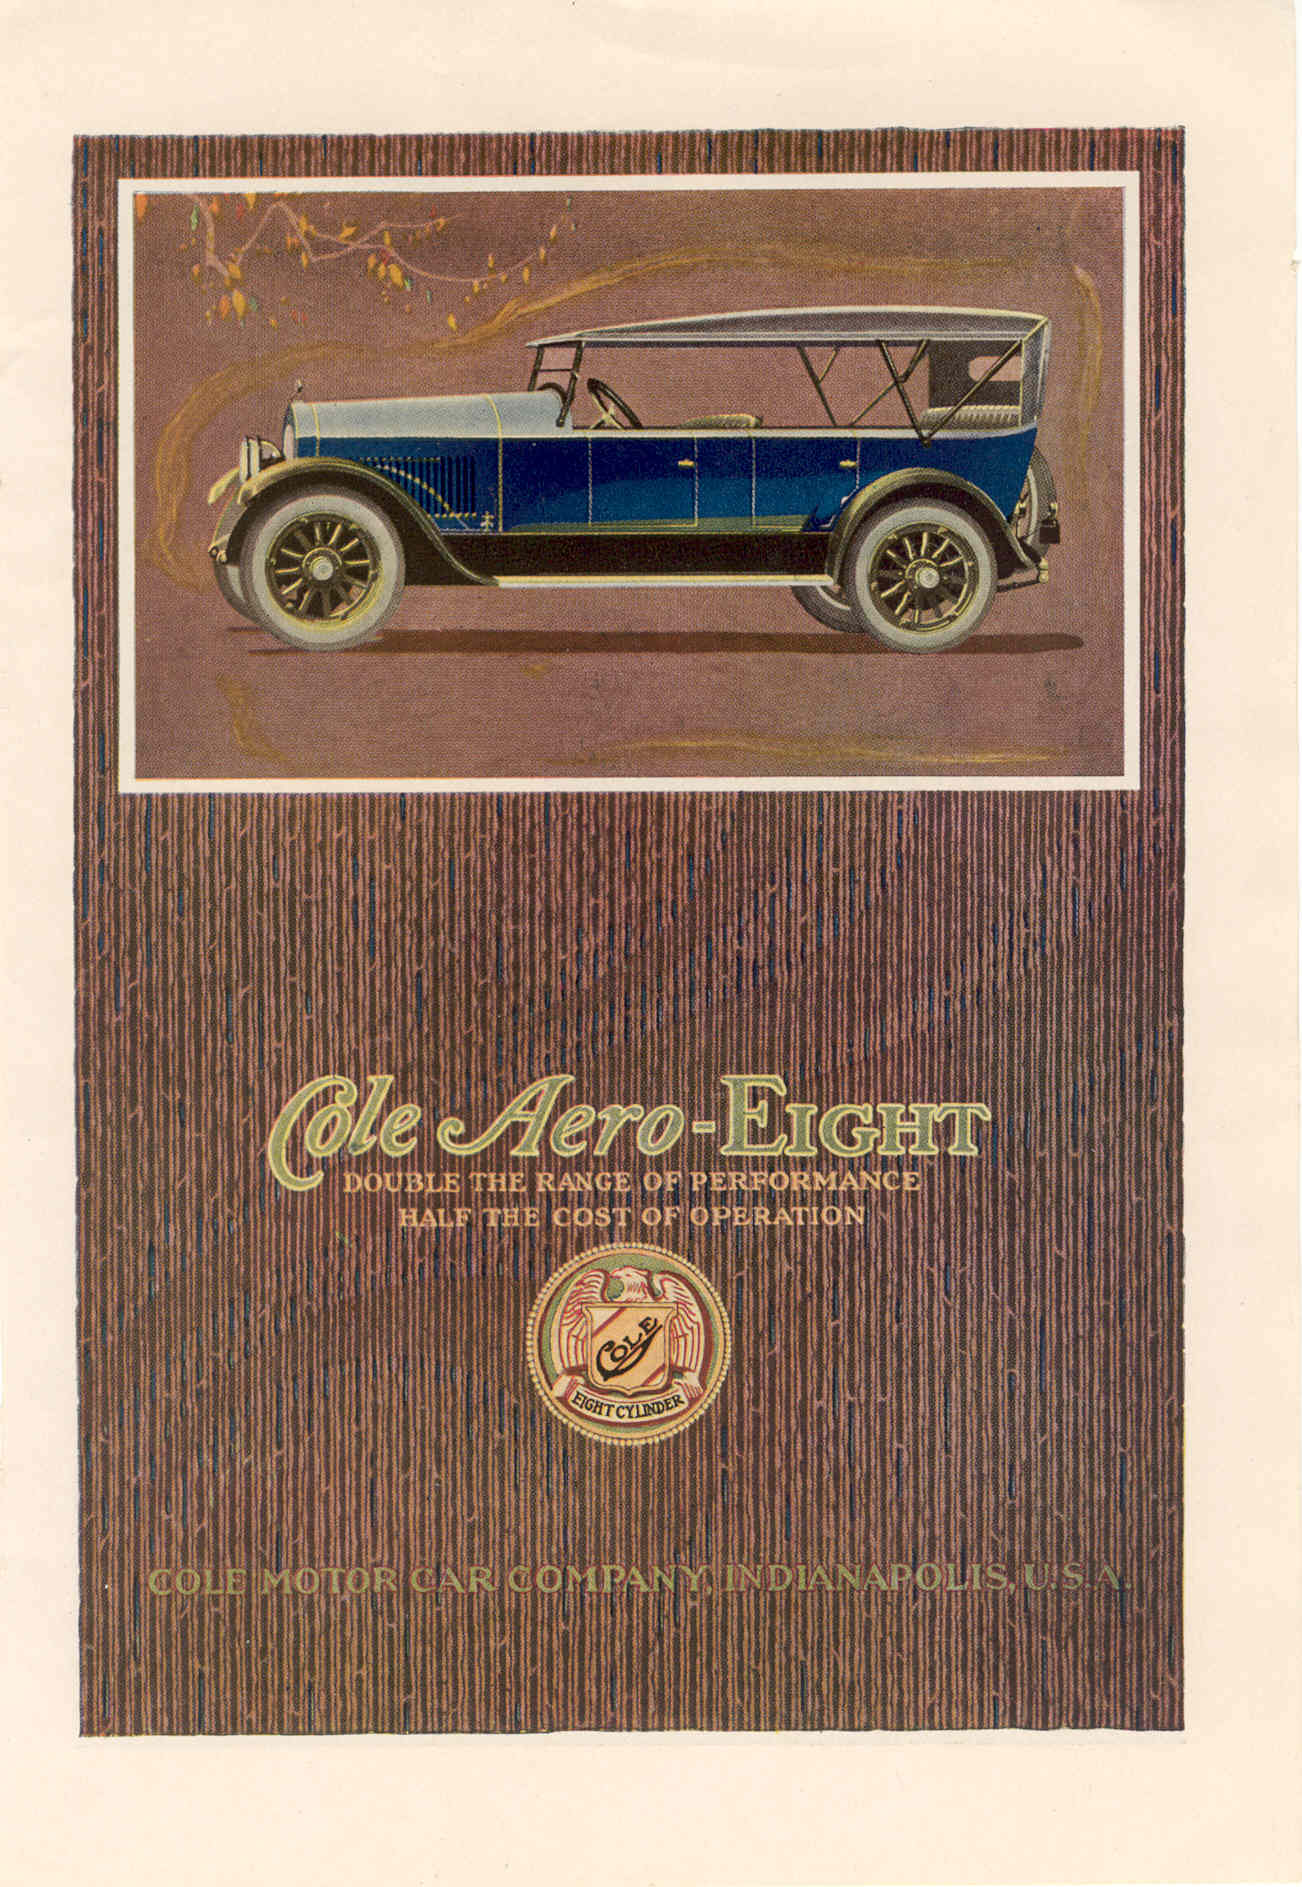 Happy Birthday to the Cole Motor Car Company